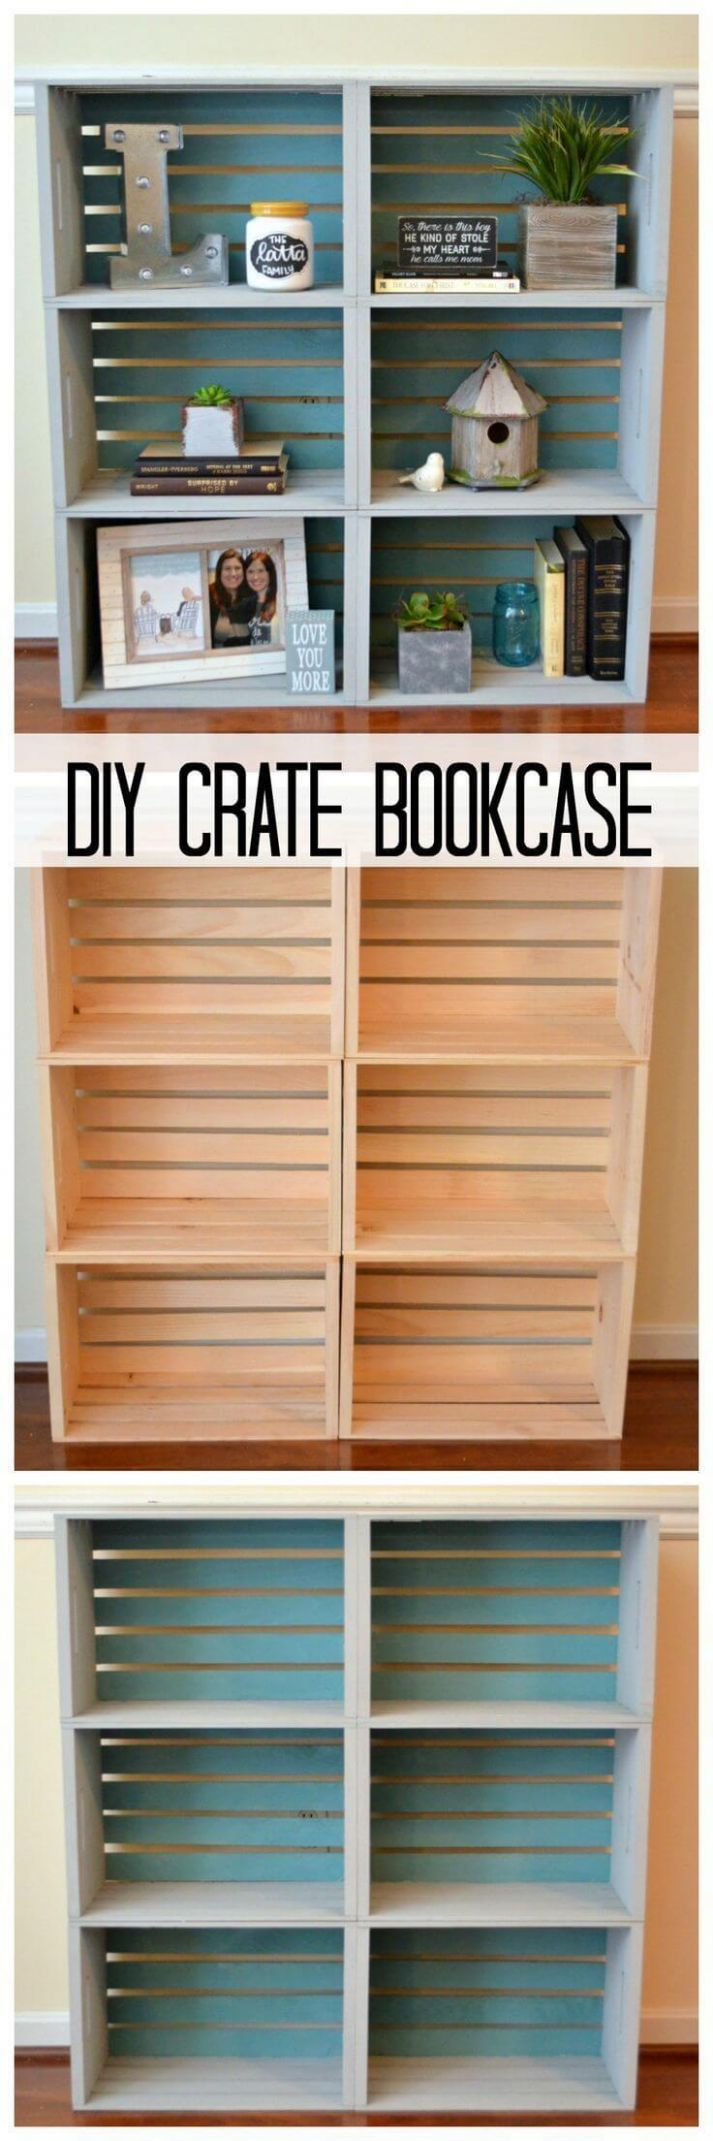 11 Best Home Decor Hacks (Ideas and Projects) for 11 - diy home decor hacks